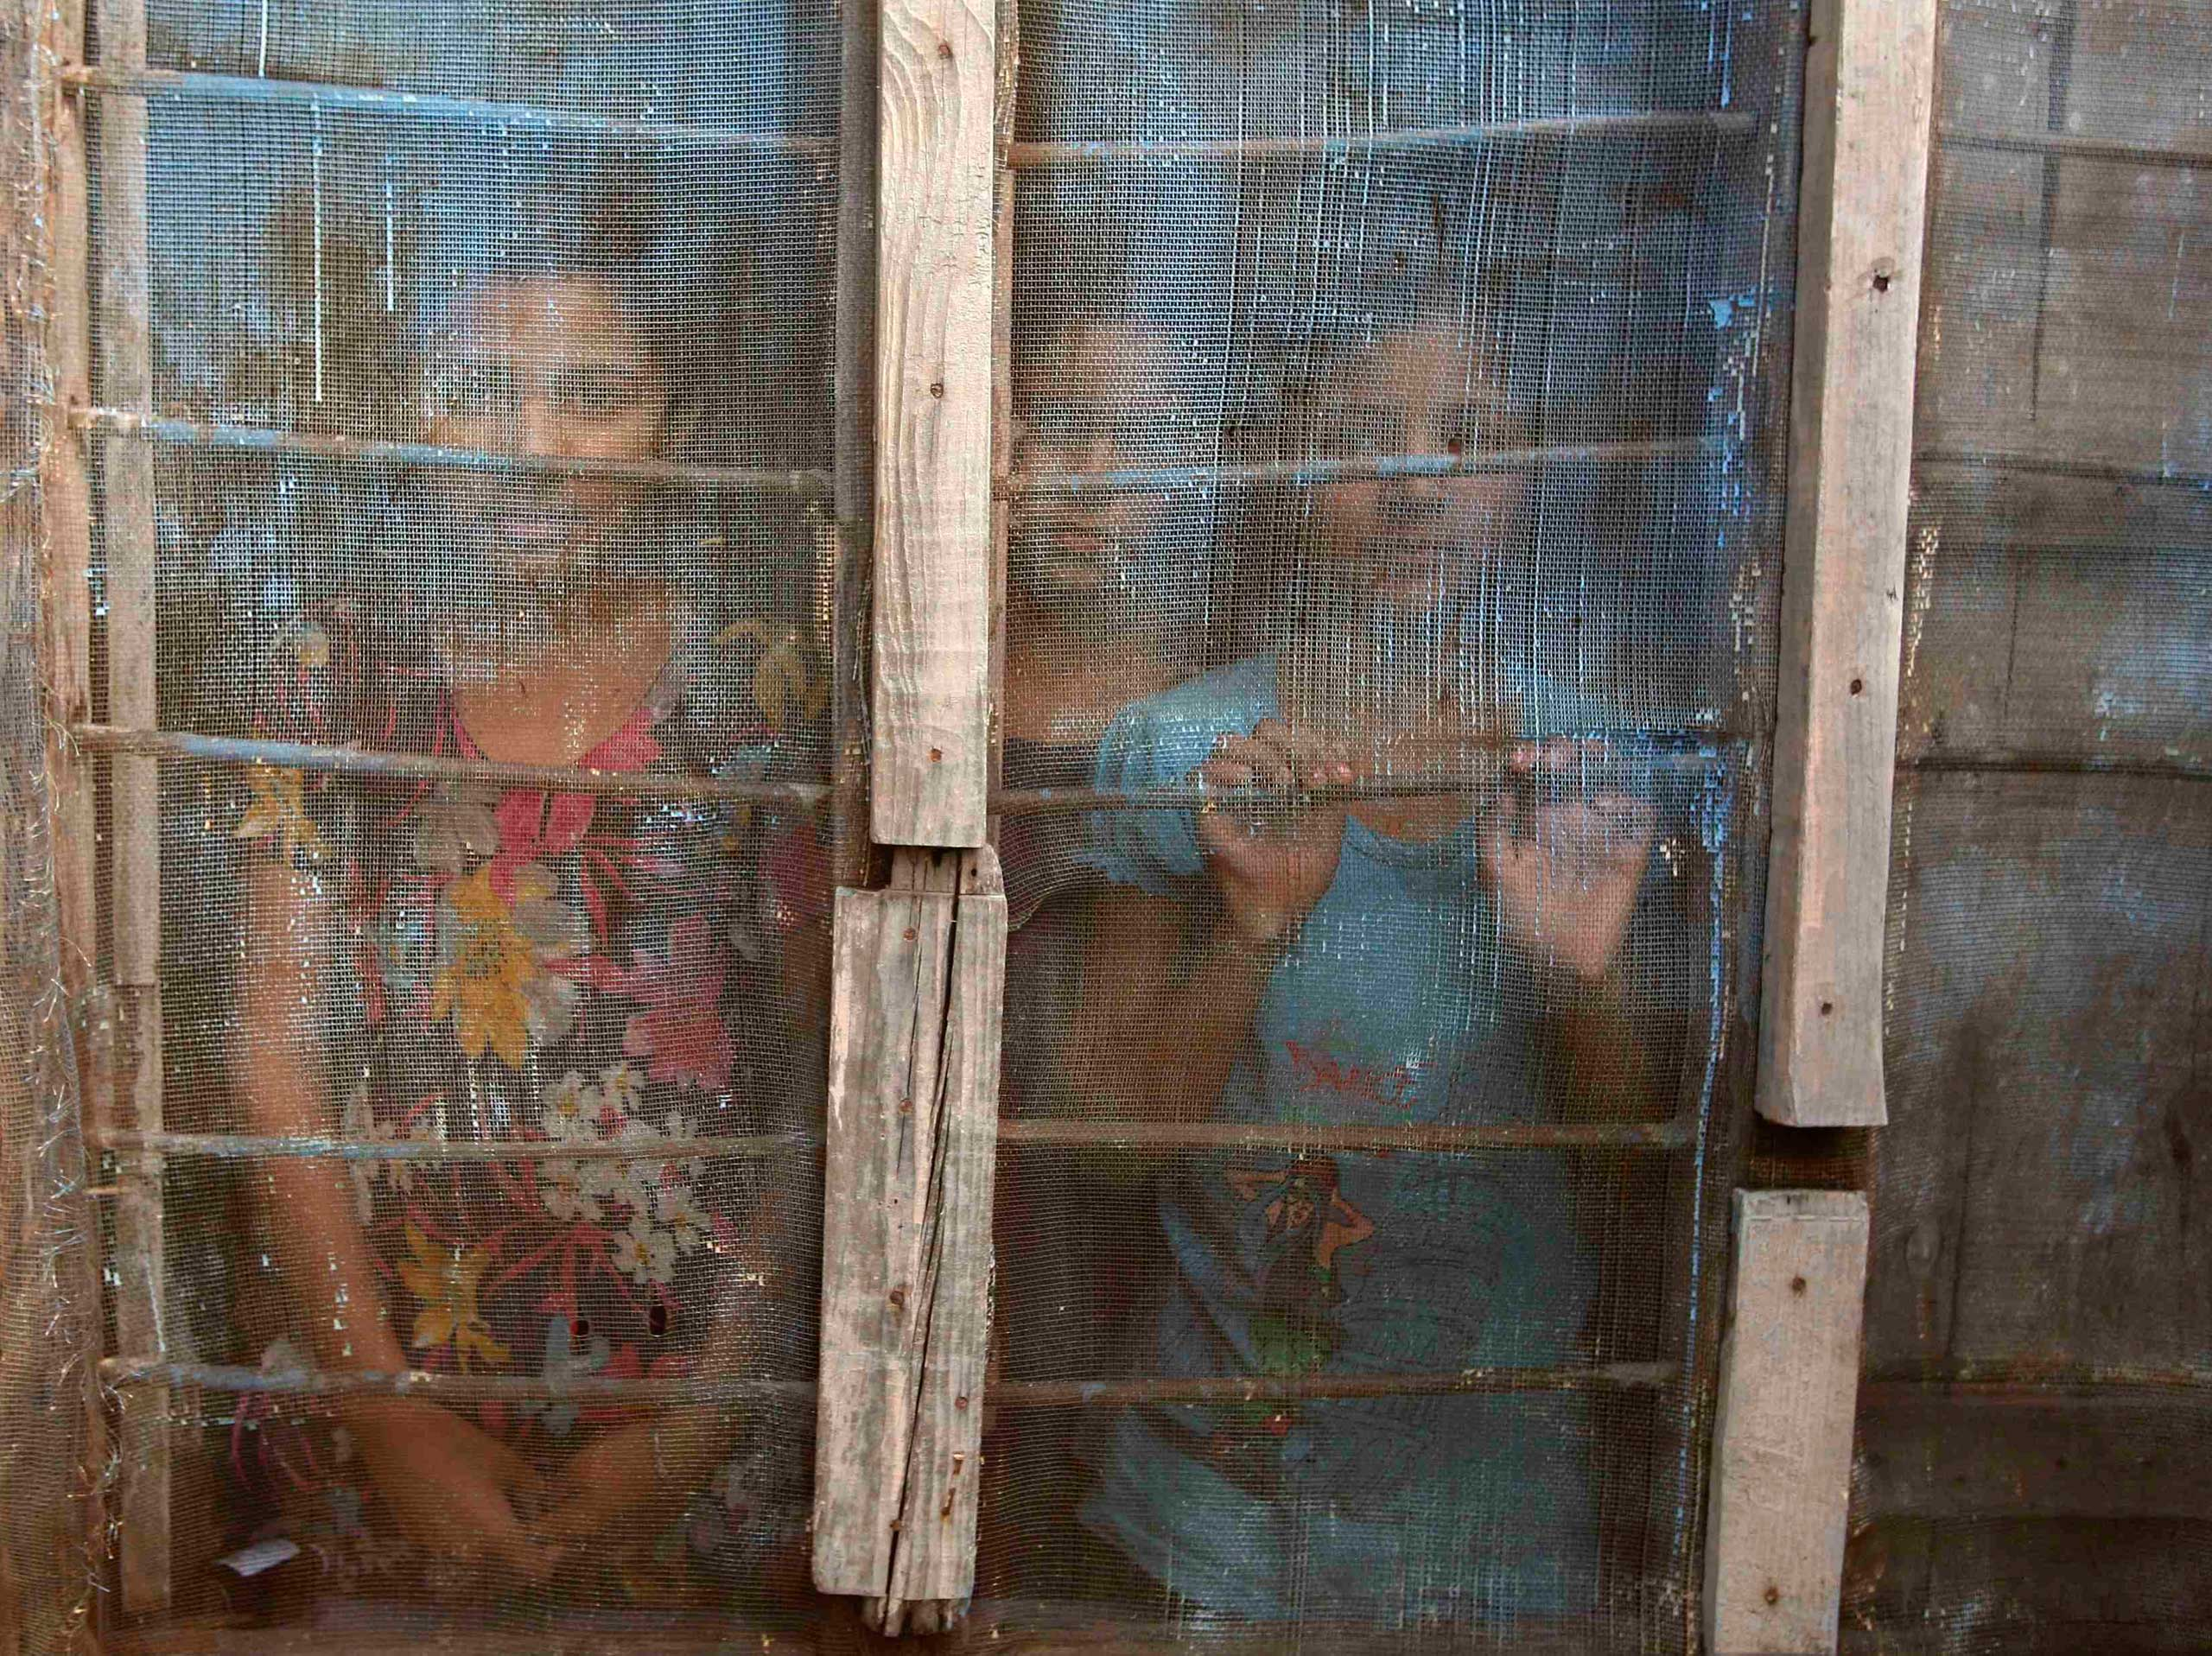 Oct. 8, 2014. Indian village girls look out from a window as they take shelter at a relief camp in Salehar village near Jammu. Five civilians were killed and thousands took refuge in camps in the disputed region of Kashmir on Wednesday after some of the most intense fighting between nuclear-armed neighbors Pakistan and India in a decade.